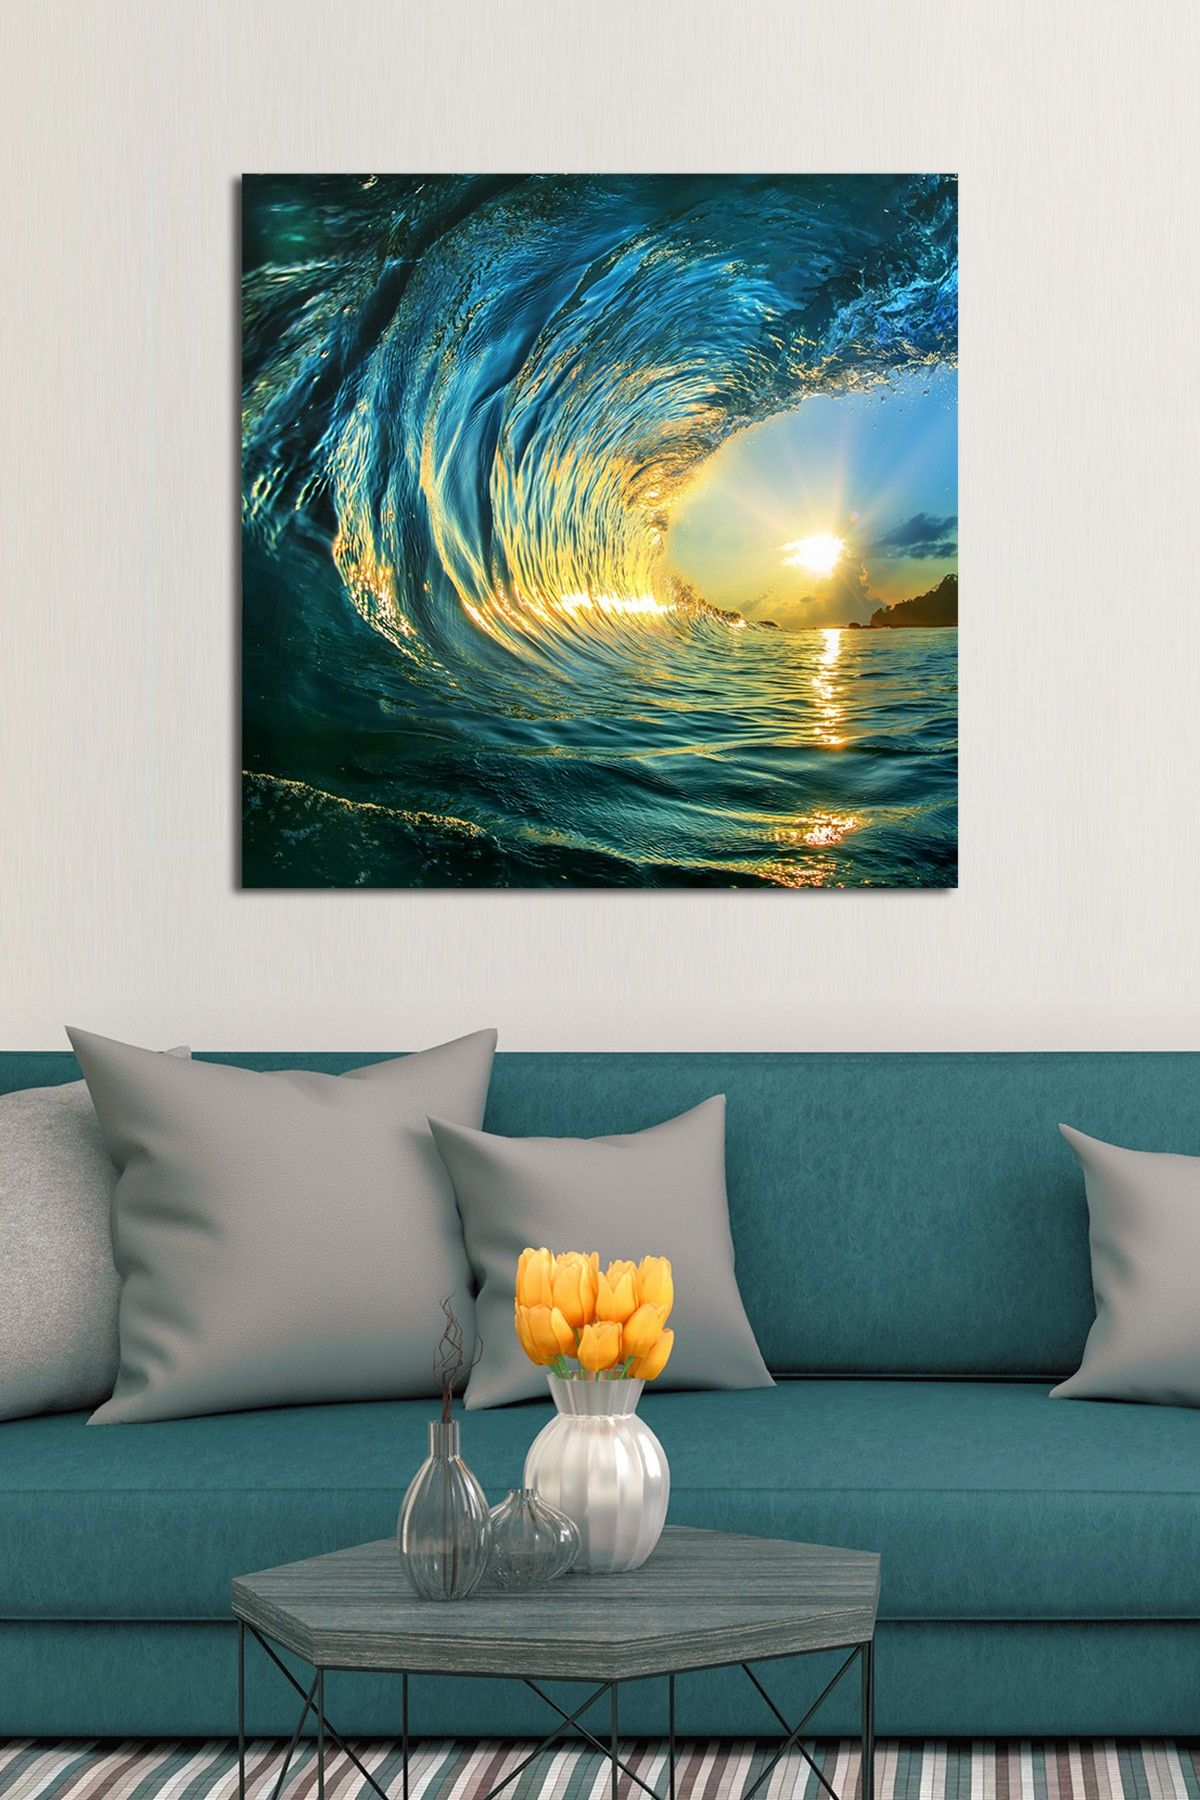 To Protect Your Home Feng Shui North Room Wall Art Hautelook Picture Wall Bedroom Artwork For Living Room Feng Shui Artwork